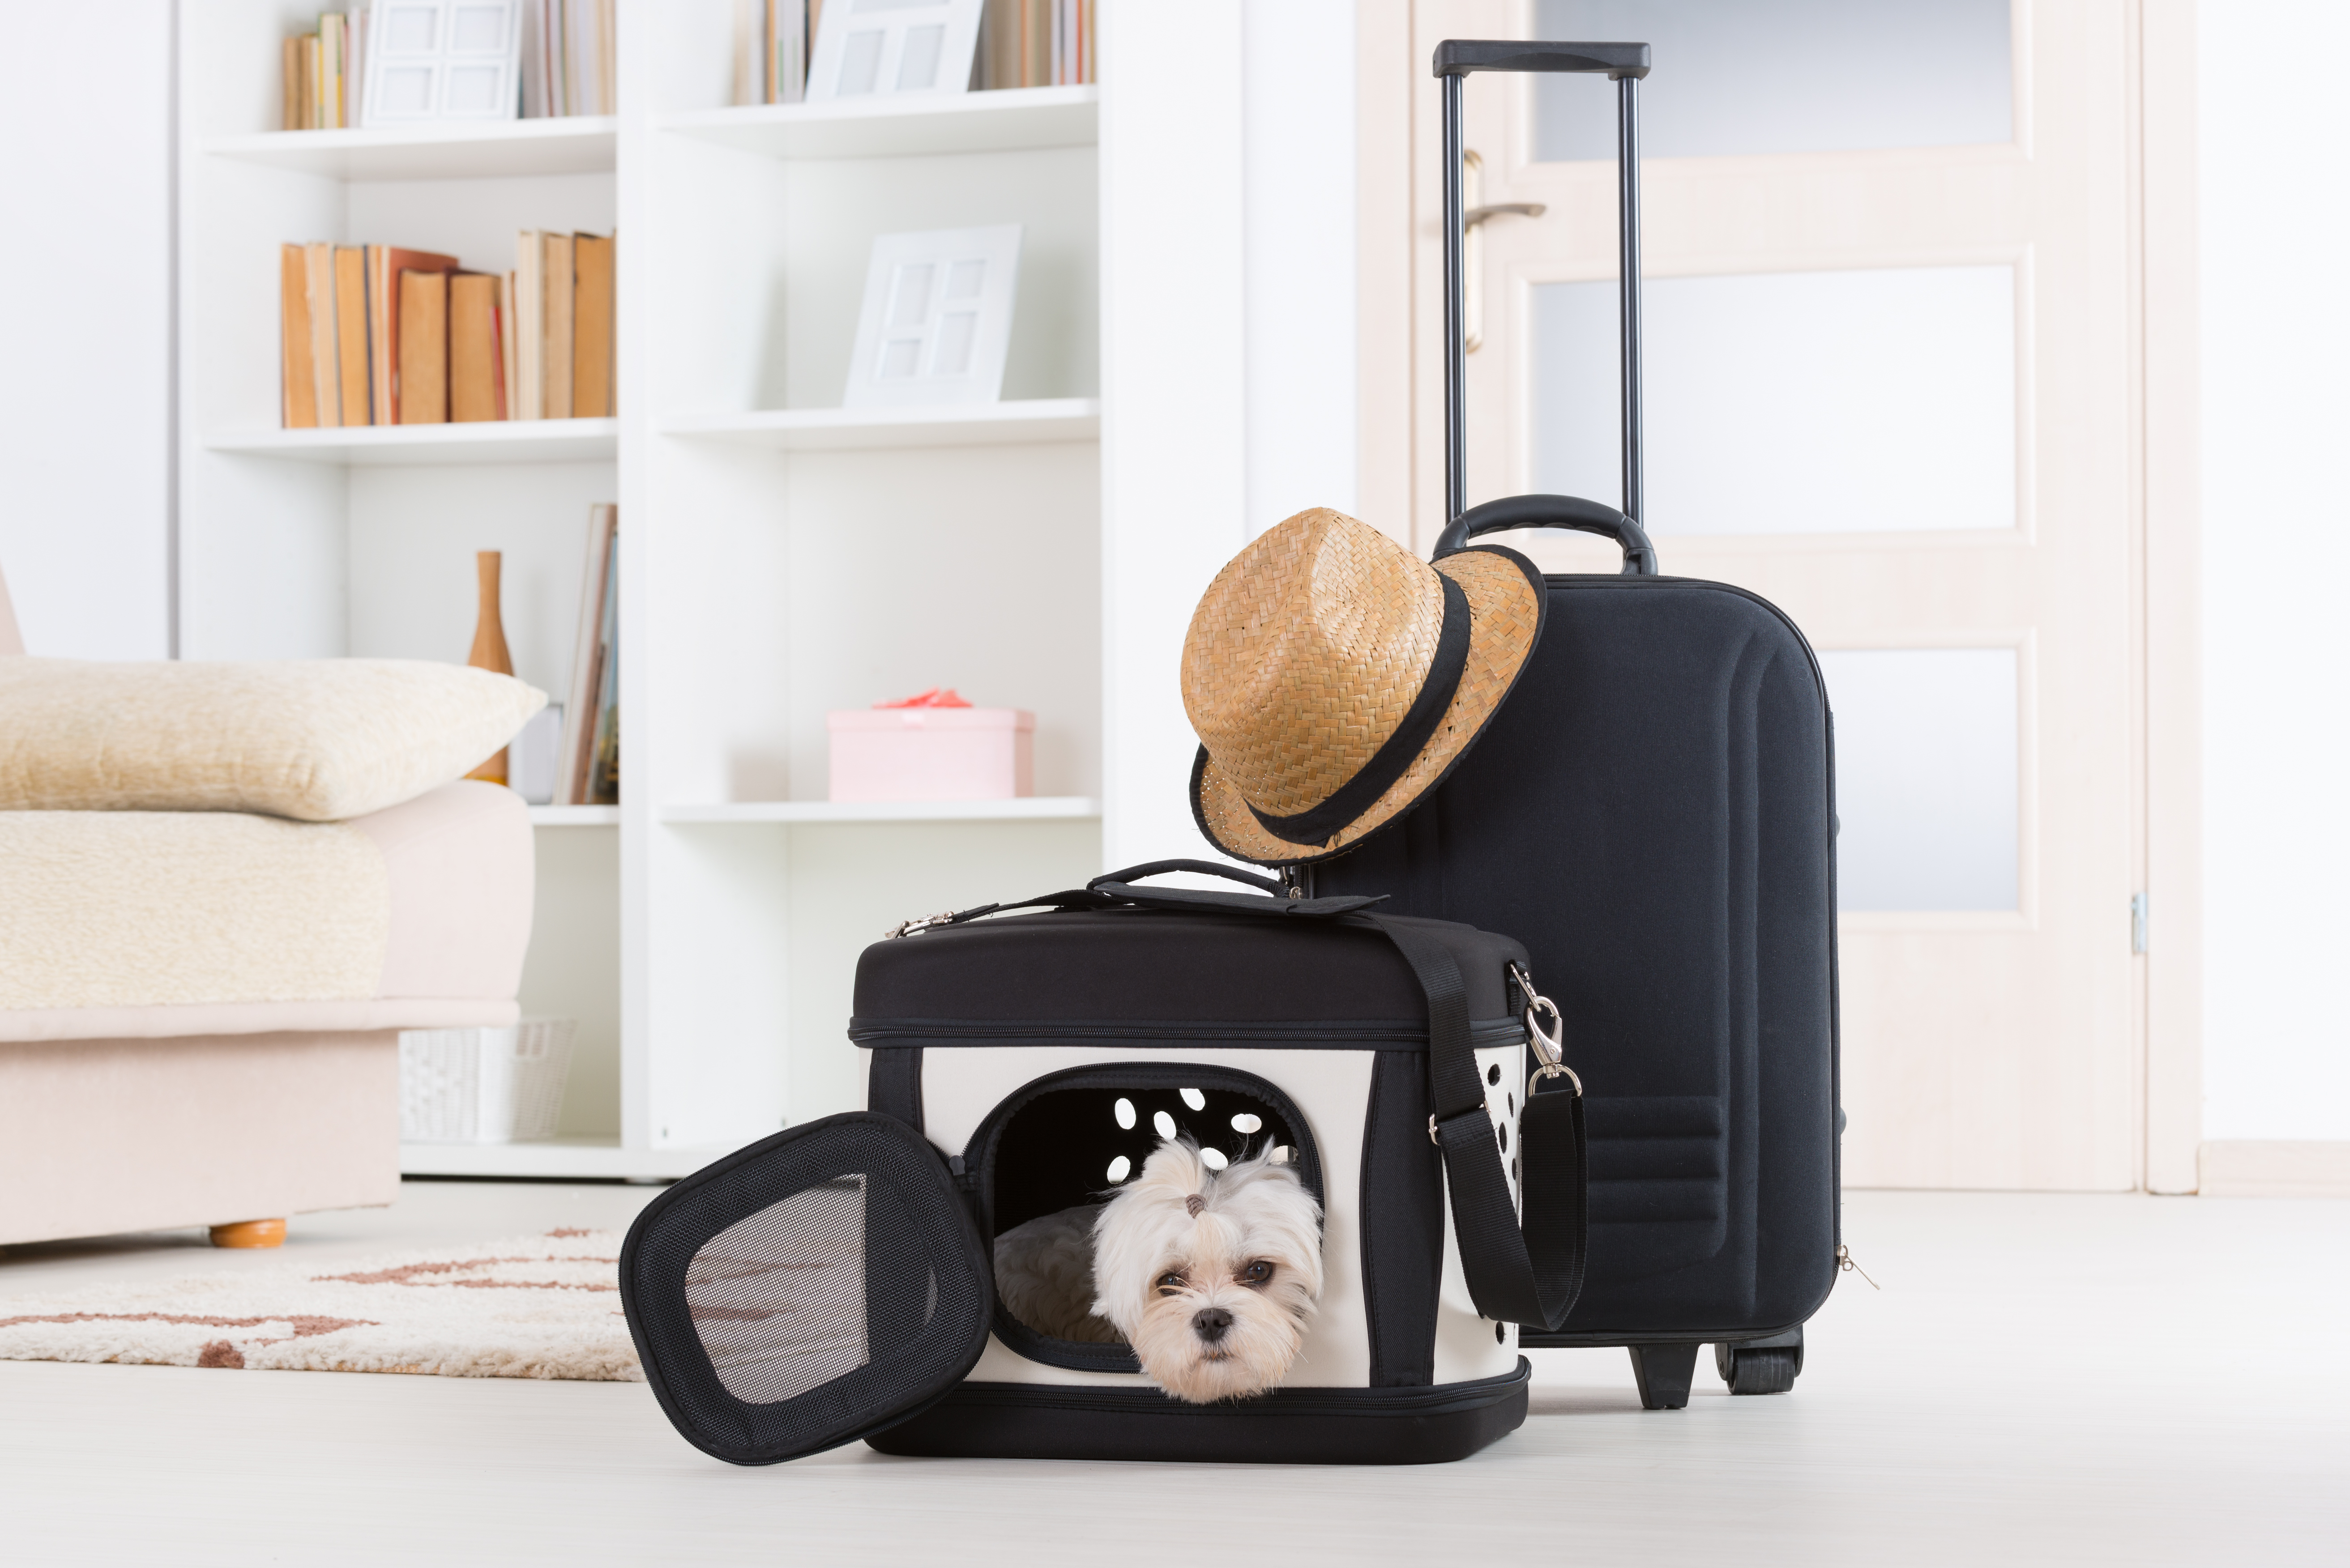 Dog in travel crate ready for flying